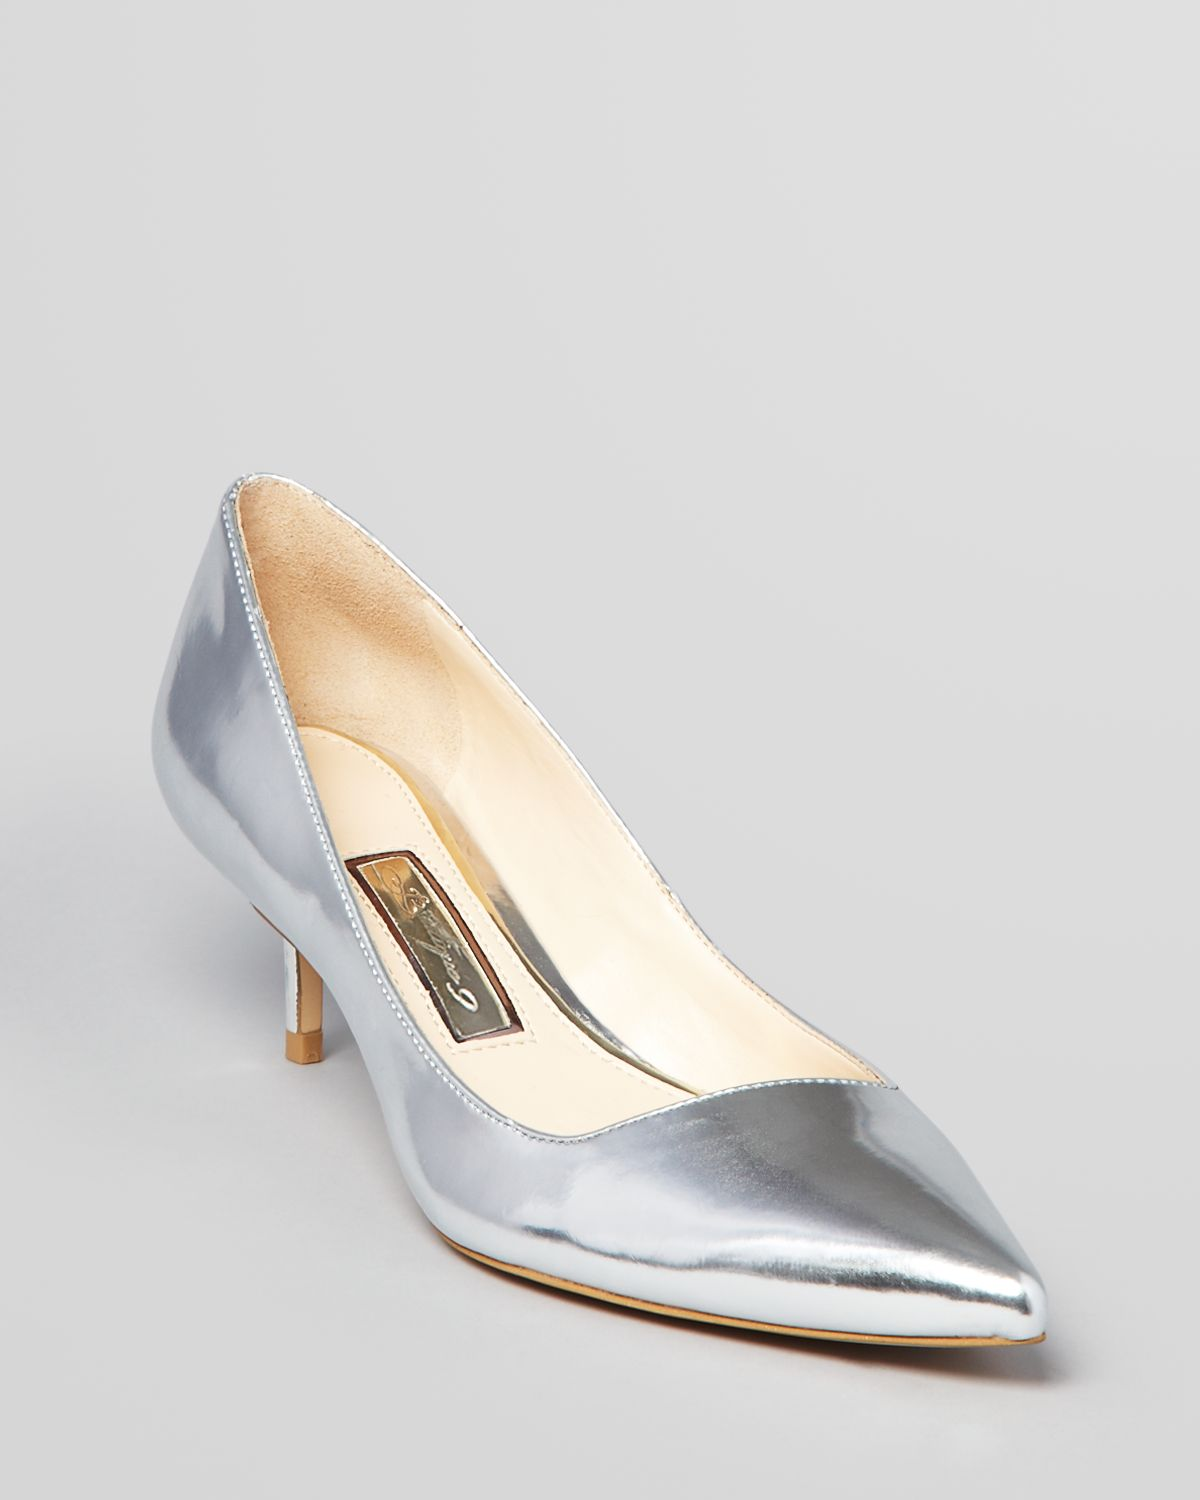 Silver Shoes Kitten Heel - Is Heel